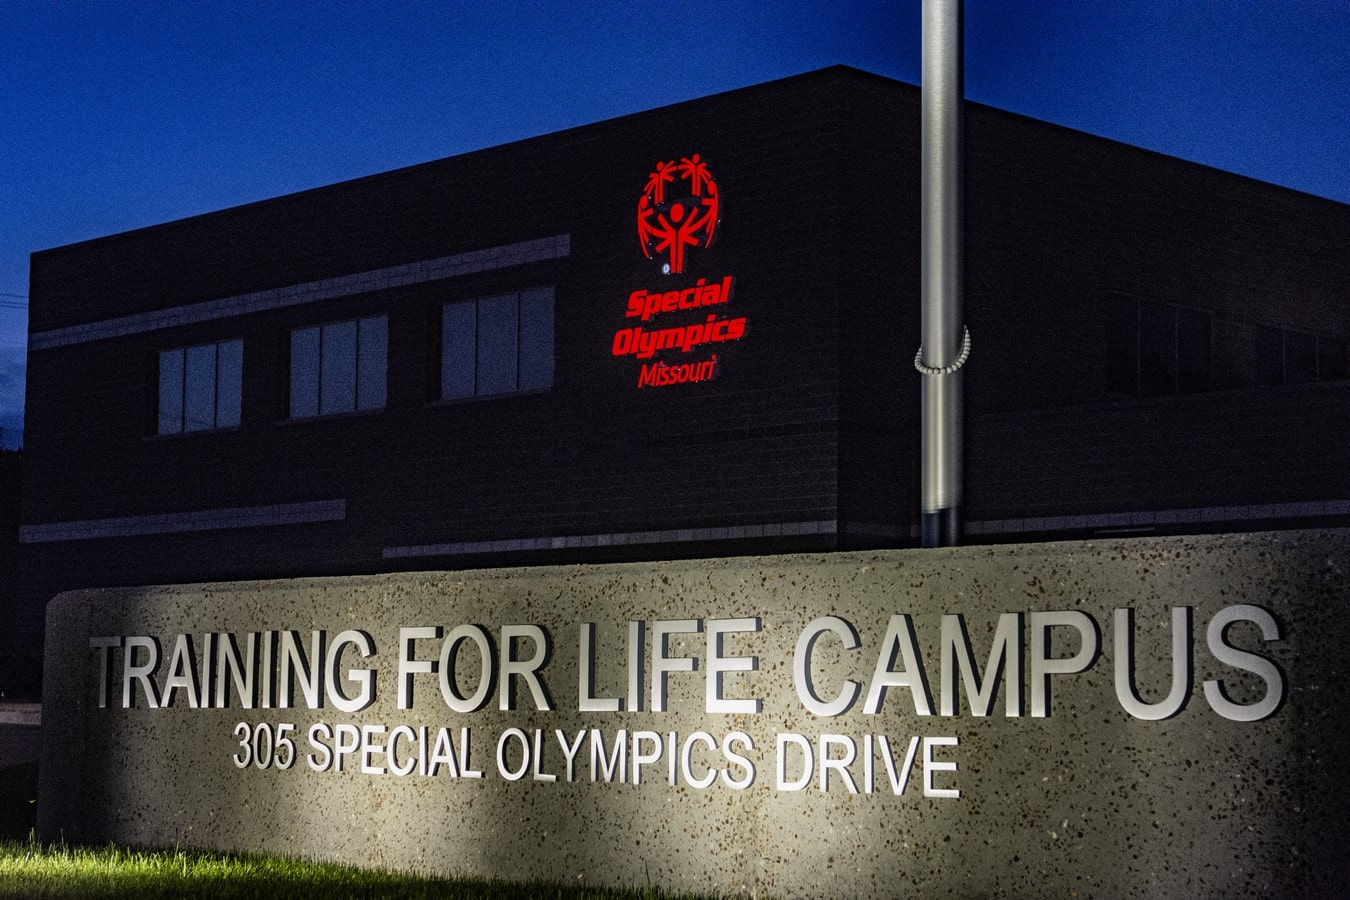 An exterior nighttime photo of the sign lit up at the Training for Life Campus